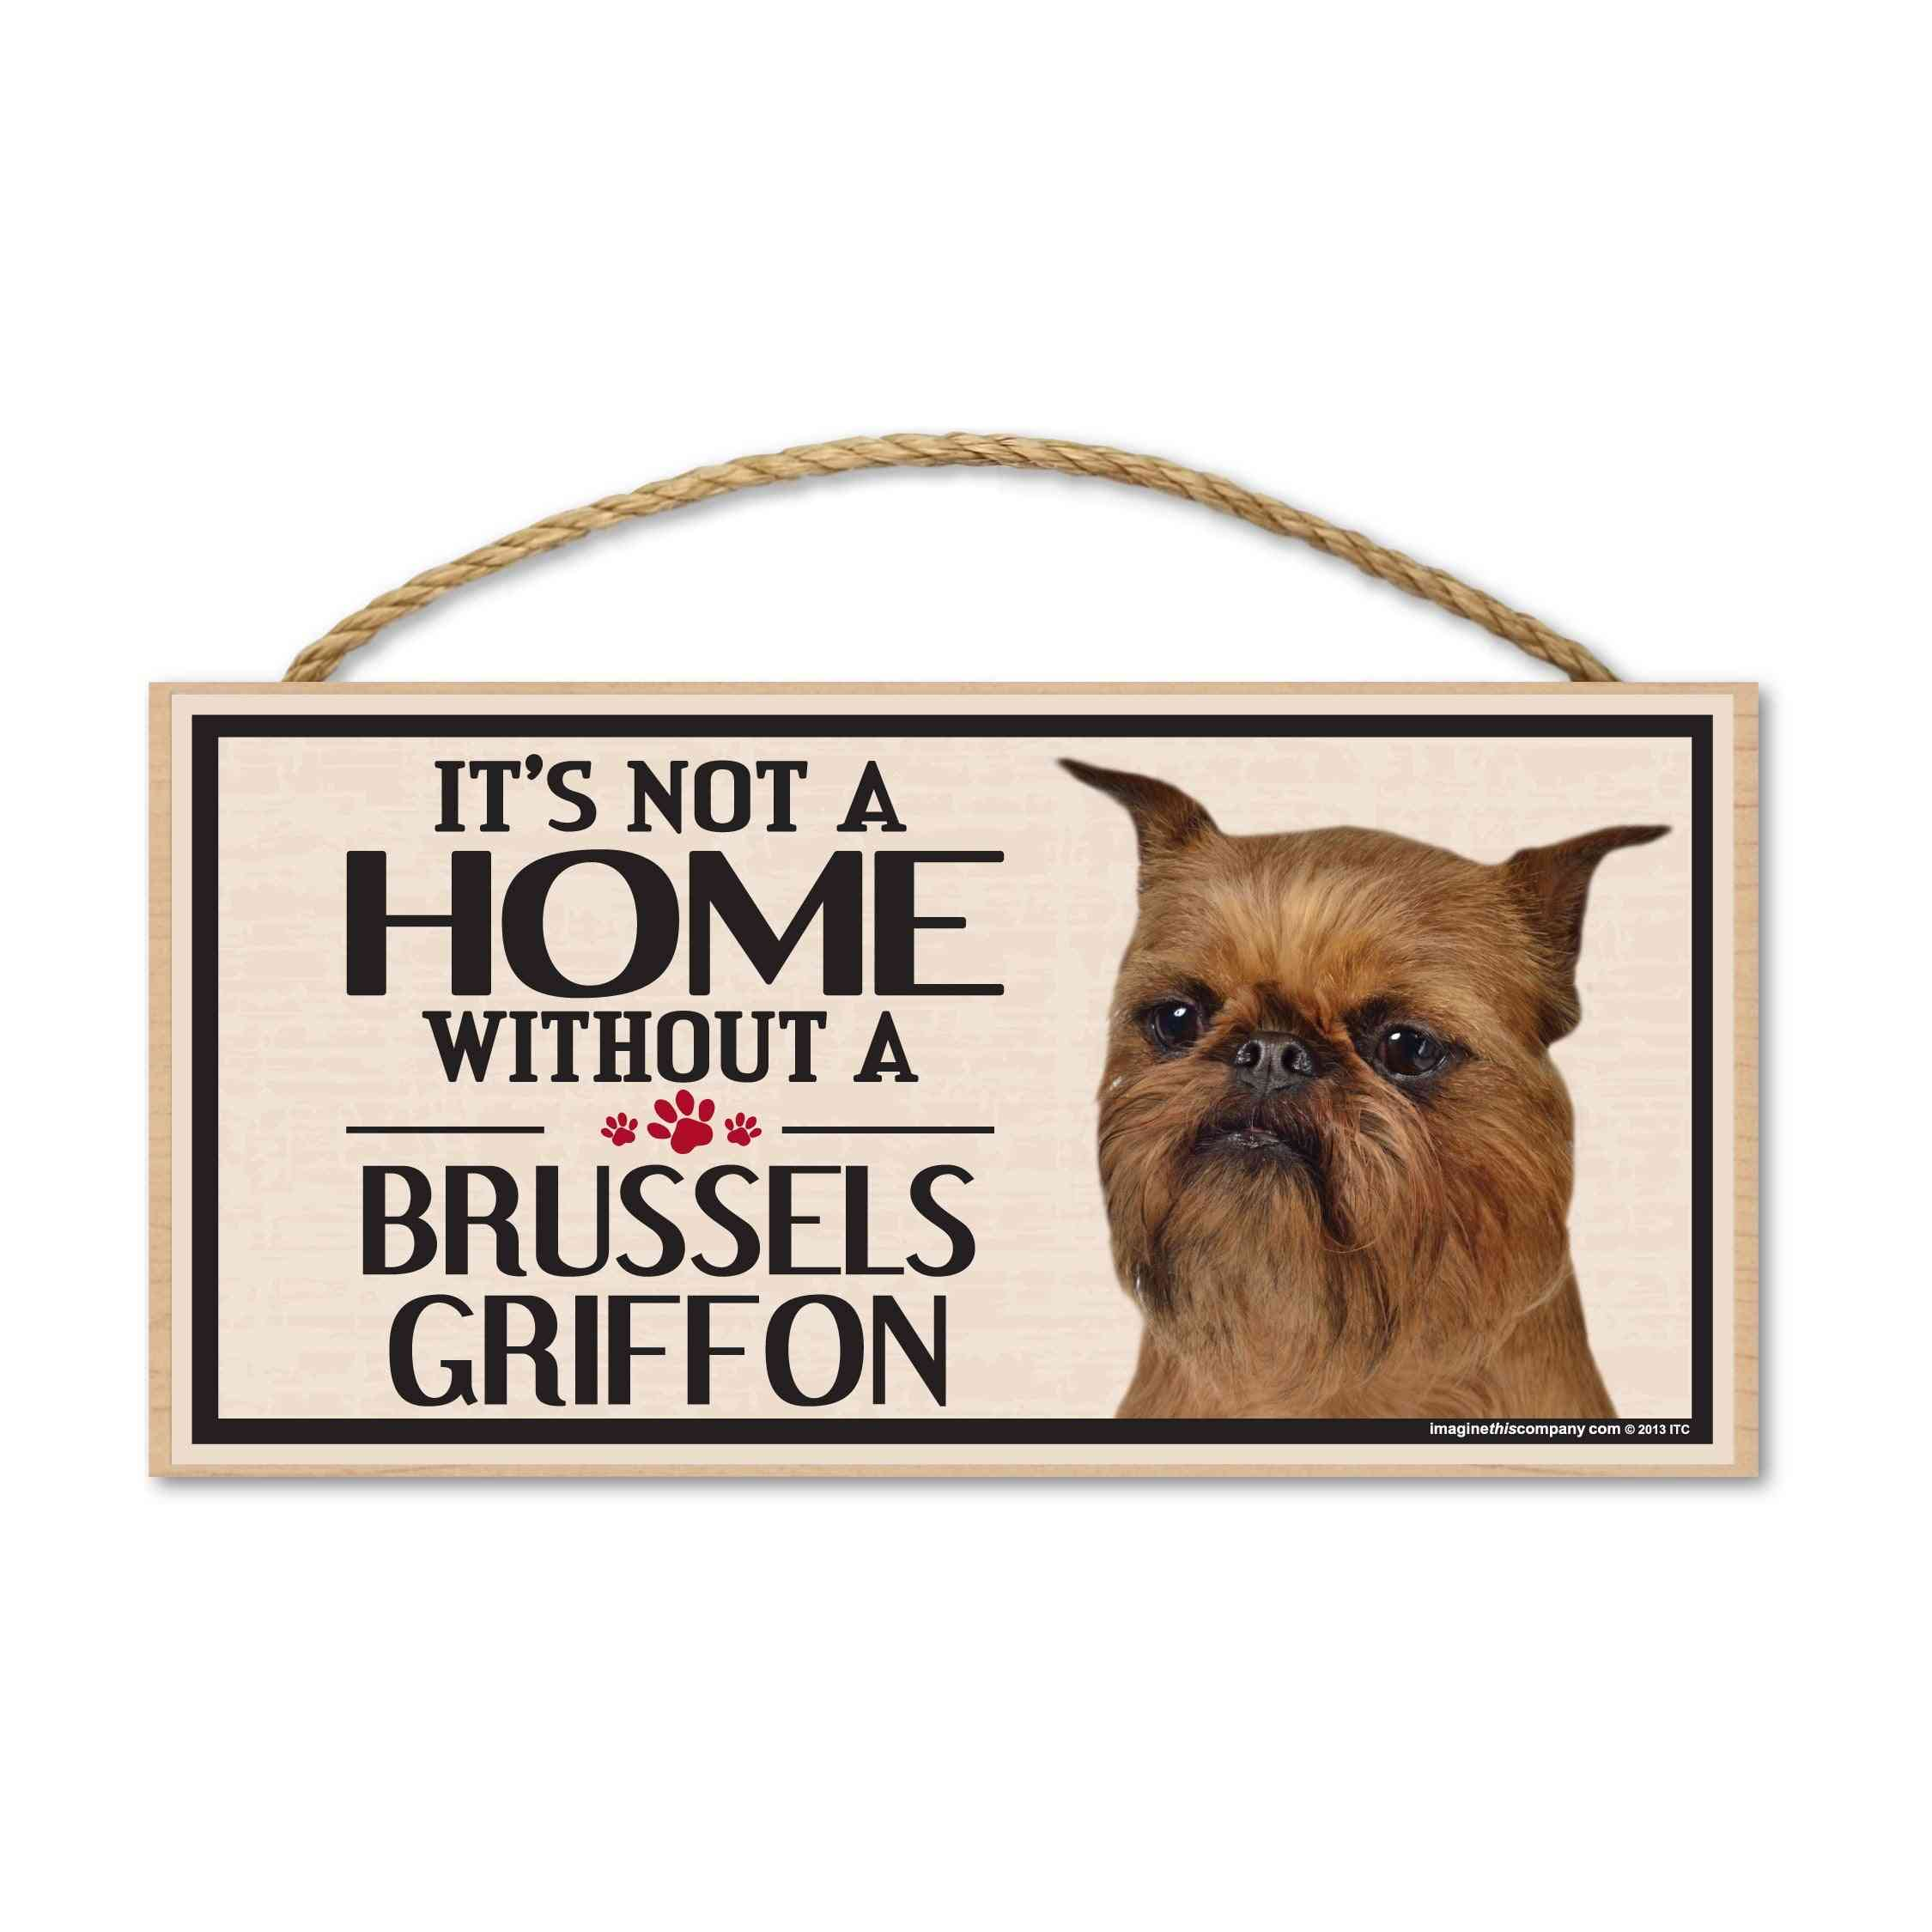 Sign, Wood, It's Not A Home Without A Brussels Griffon, 10